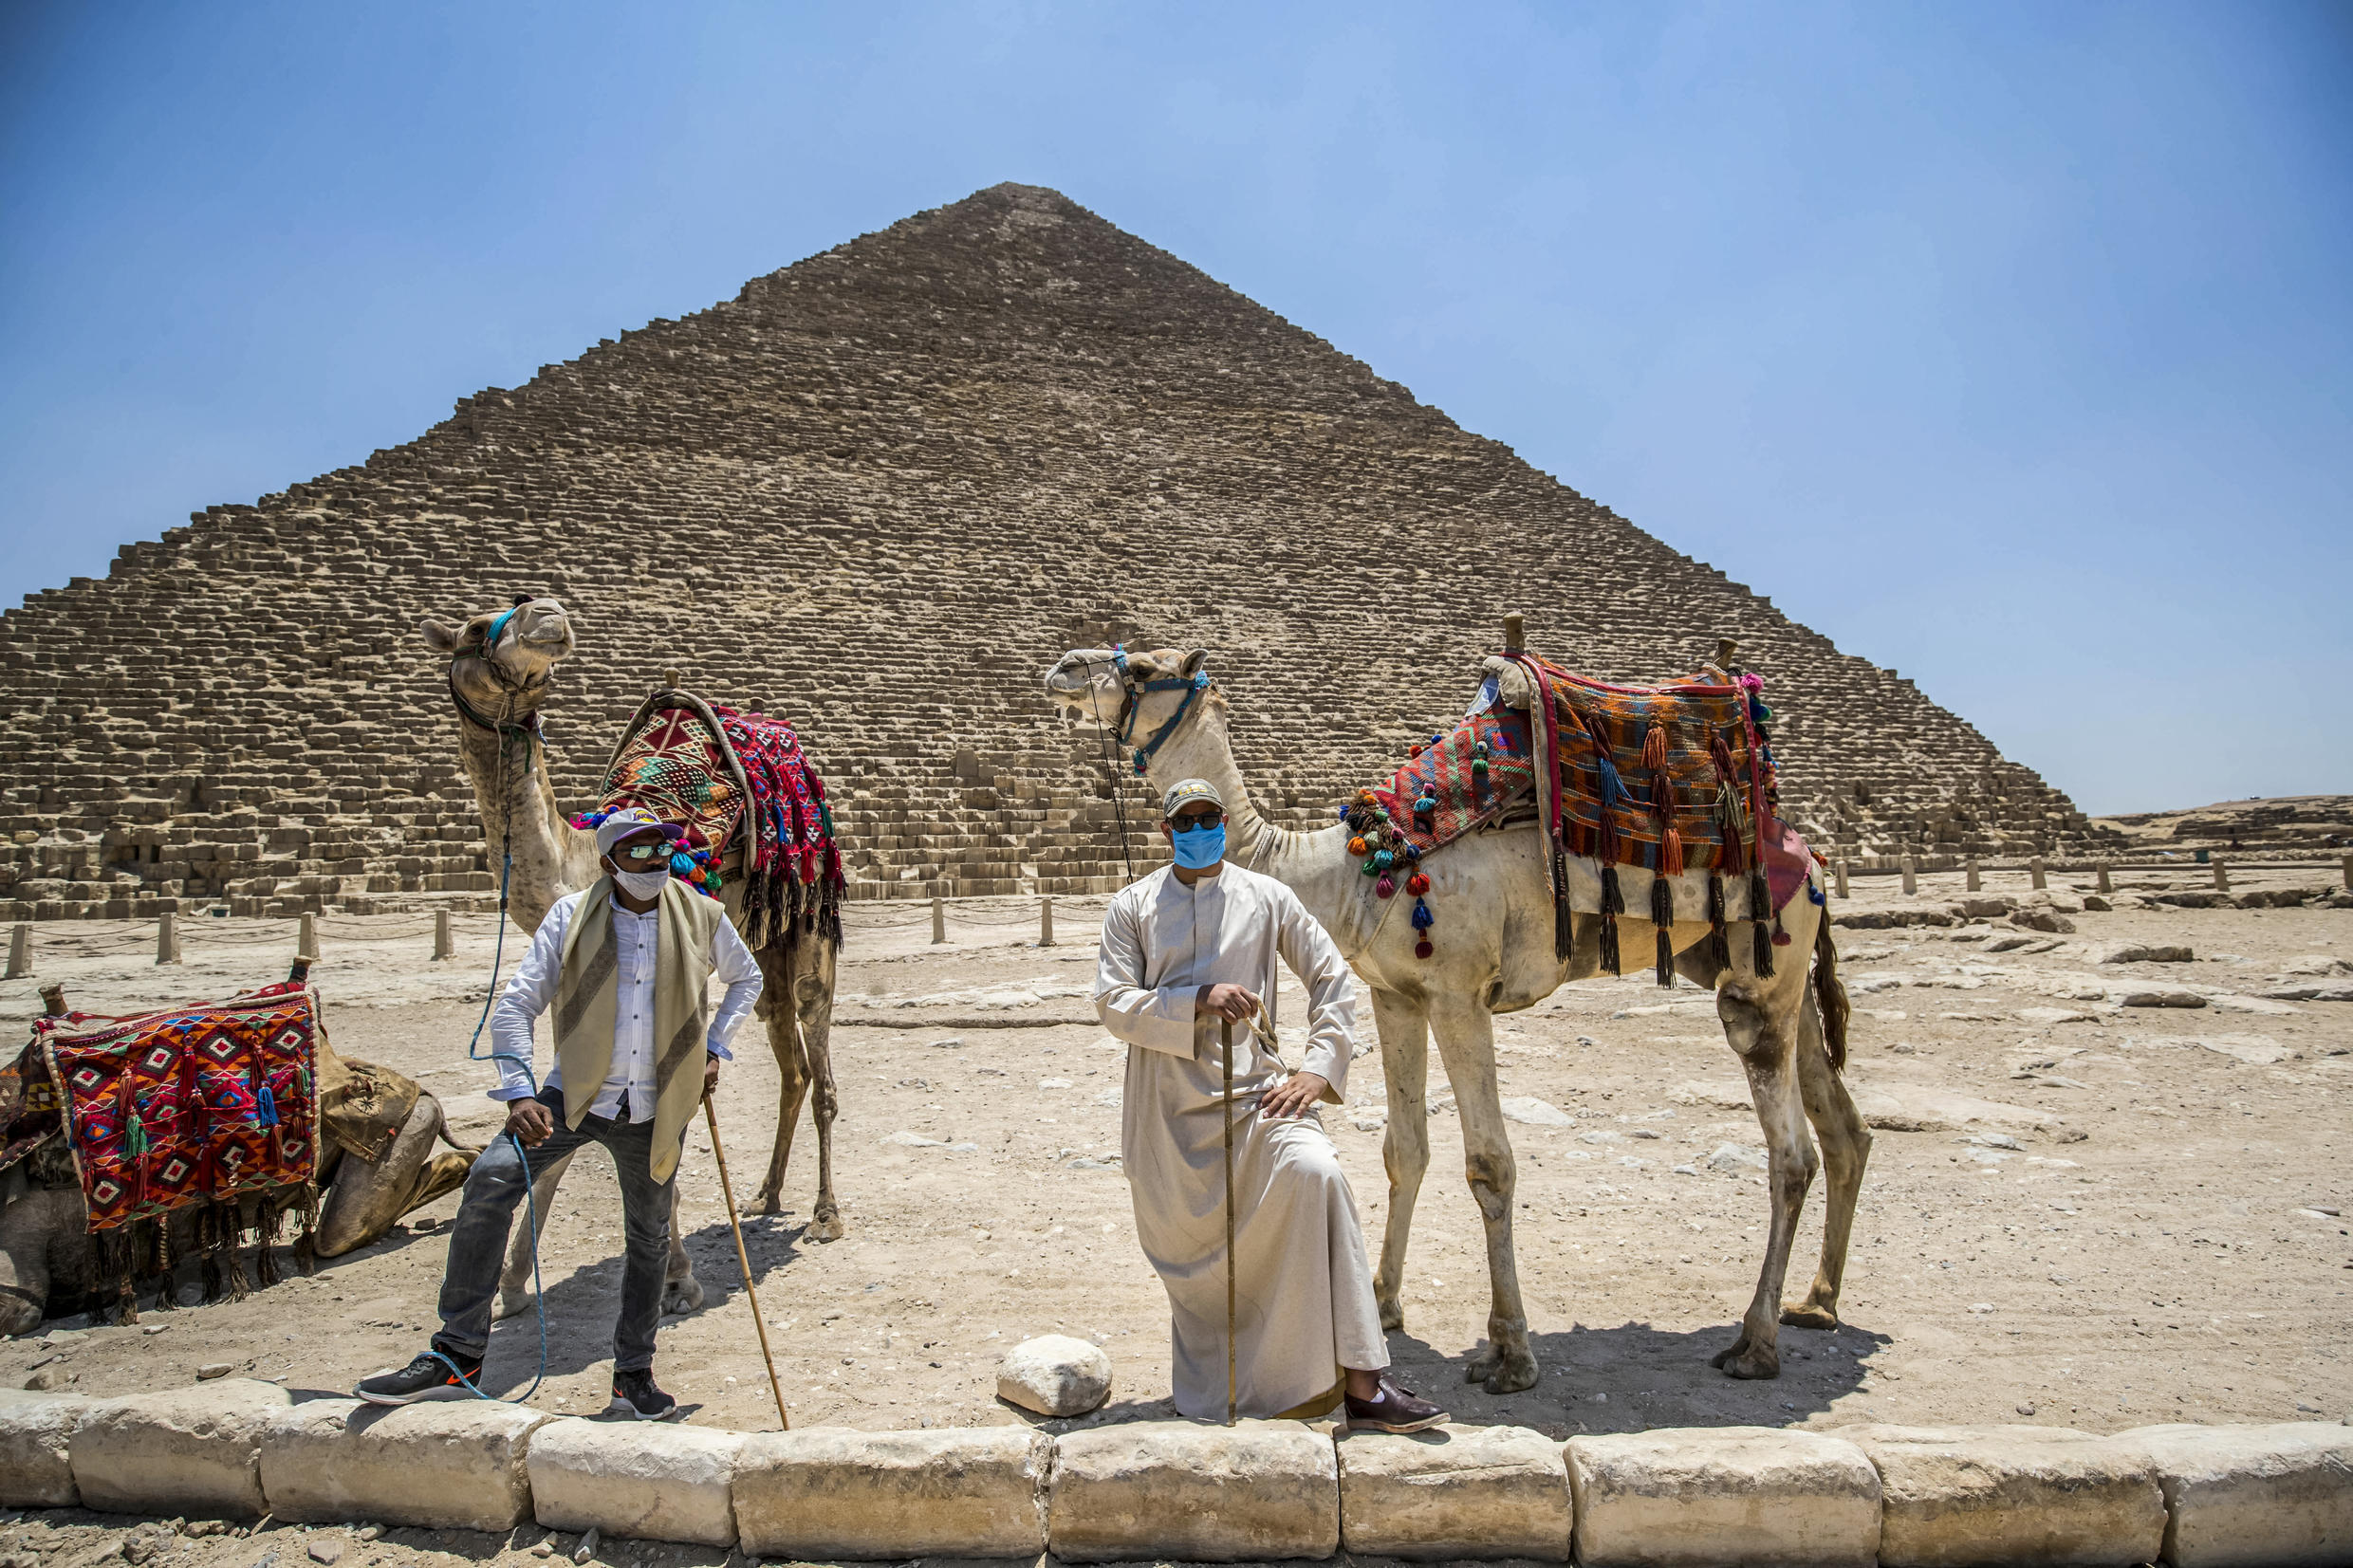 Mask-clad camel guides stand by their camels near the Great Pyramid of Khufu (Cheops) at the Giza Pyramids necropolis on the southwestern outskirts of the Egyptian capital Cairo on July 1, 2020.